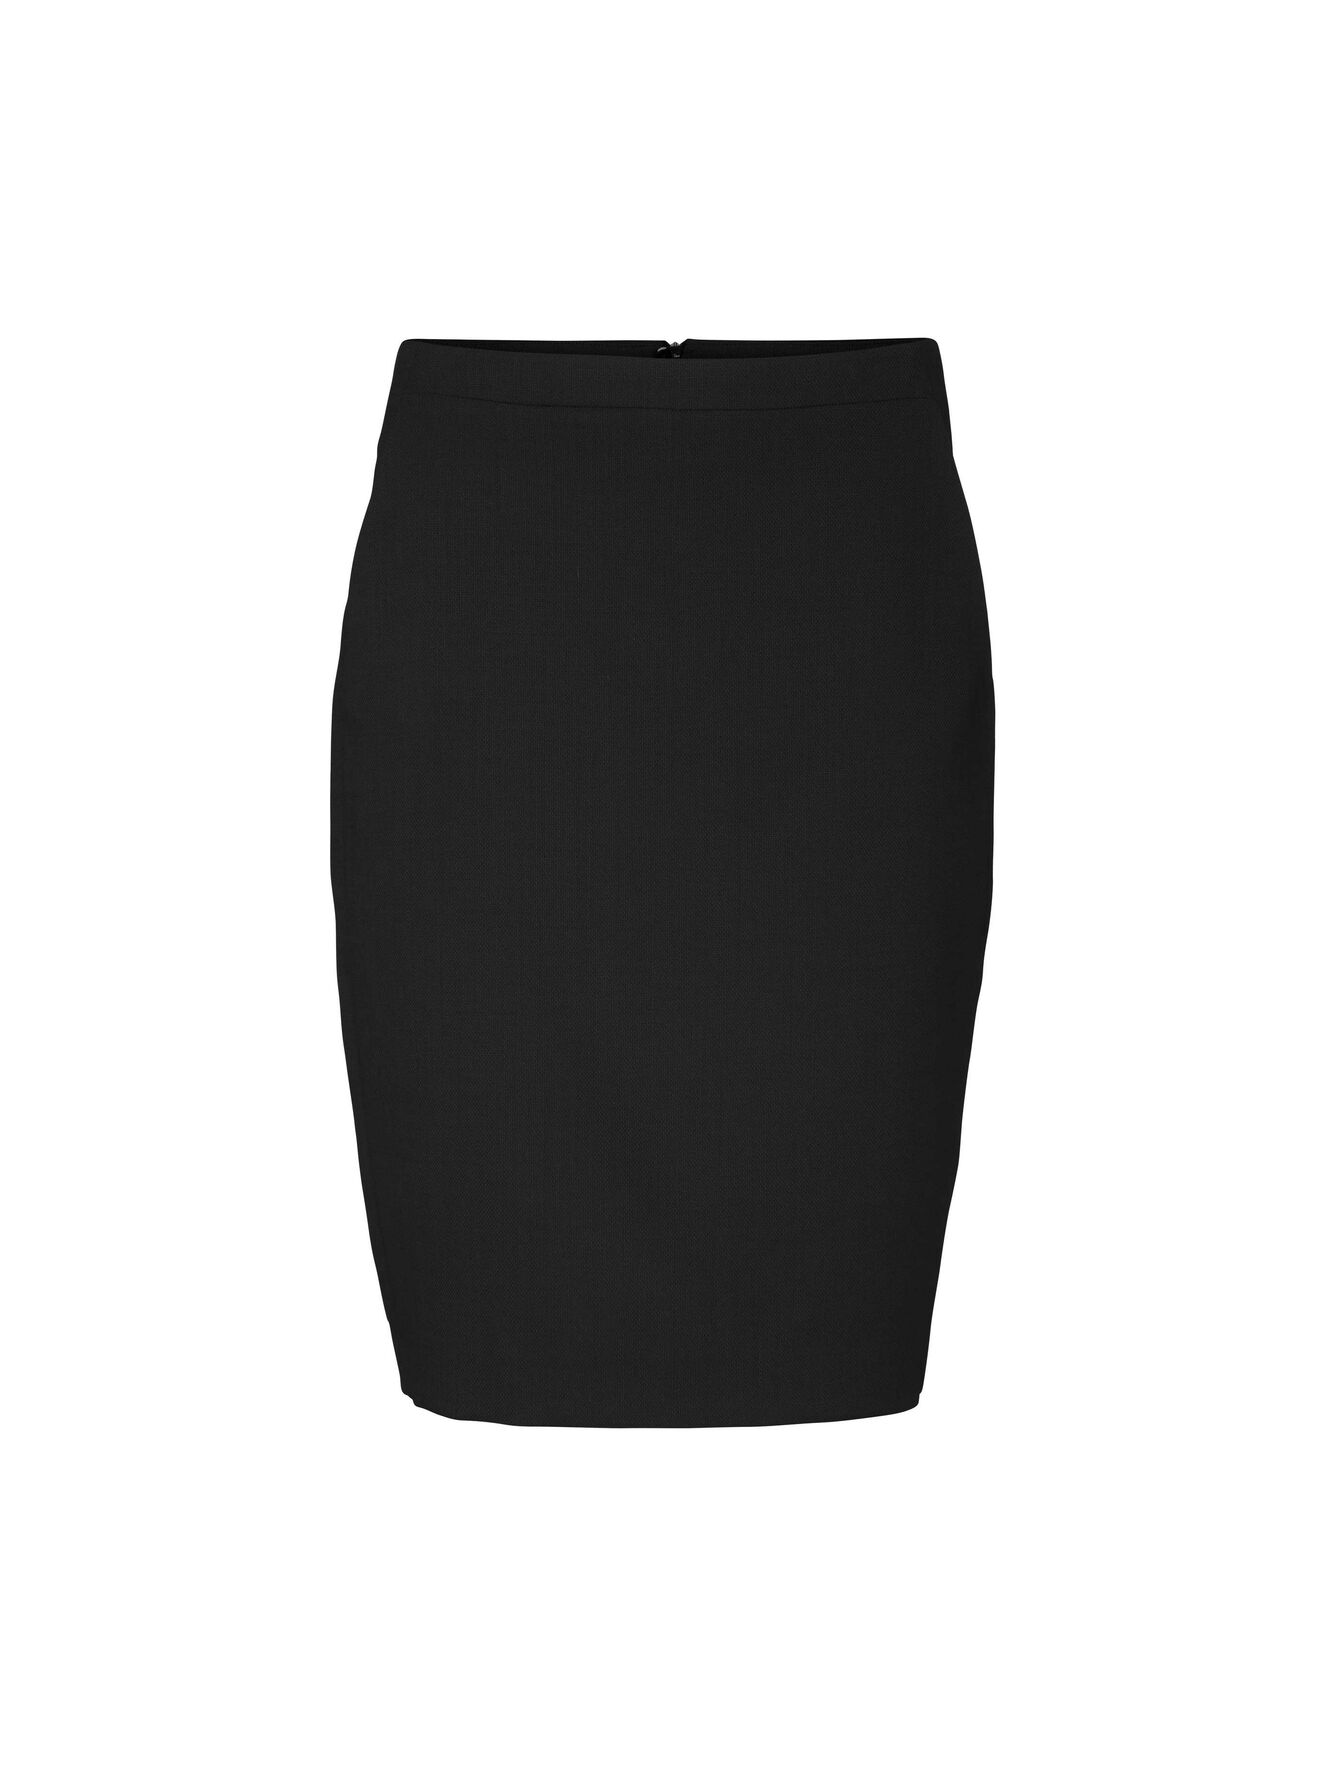 Ariela skirt in Night Black from Tiger of Sweden